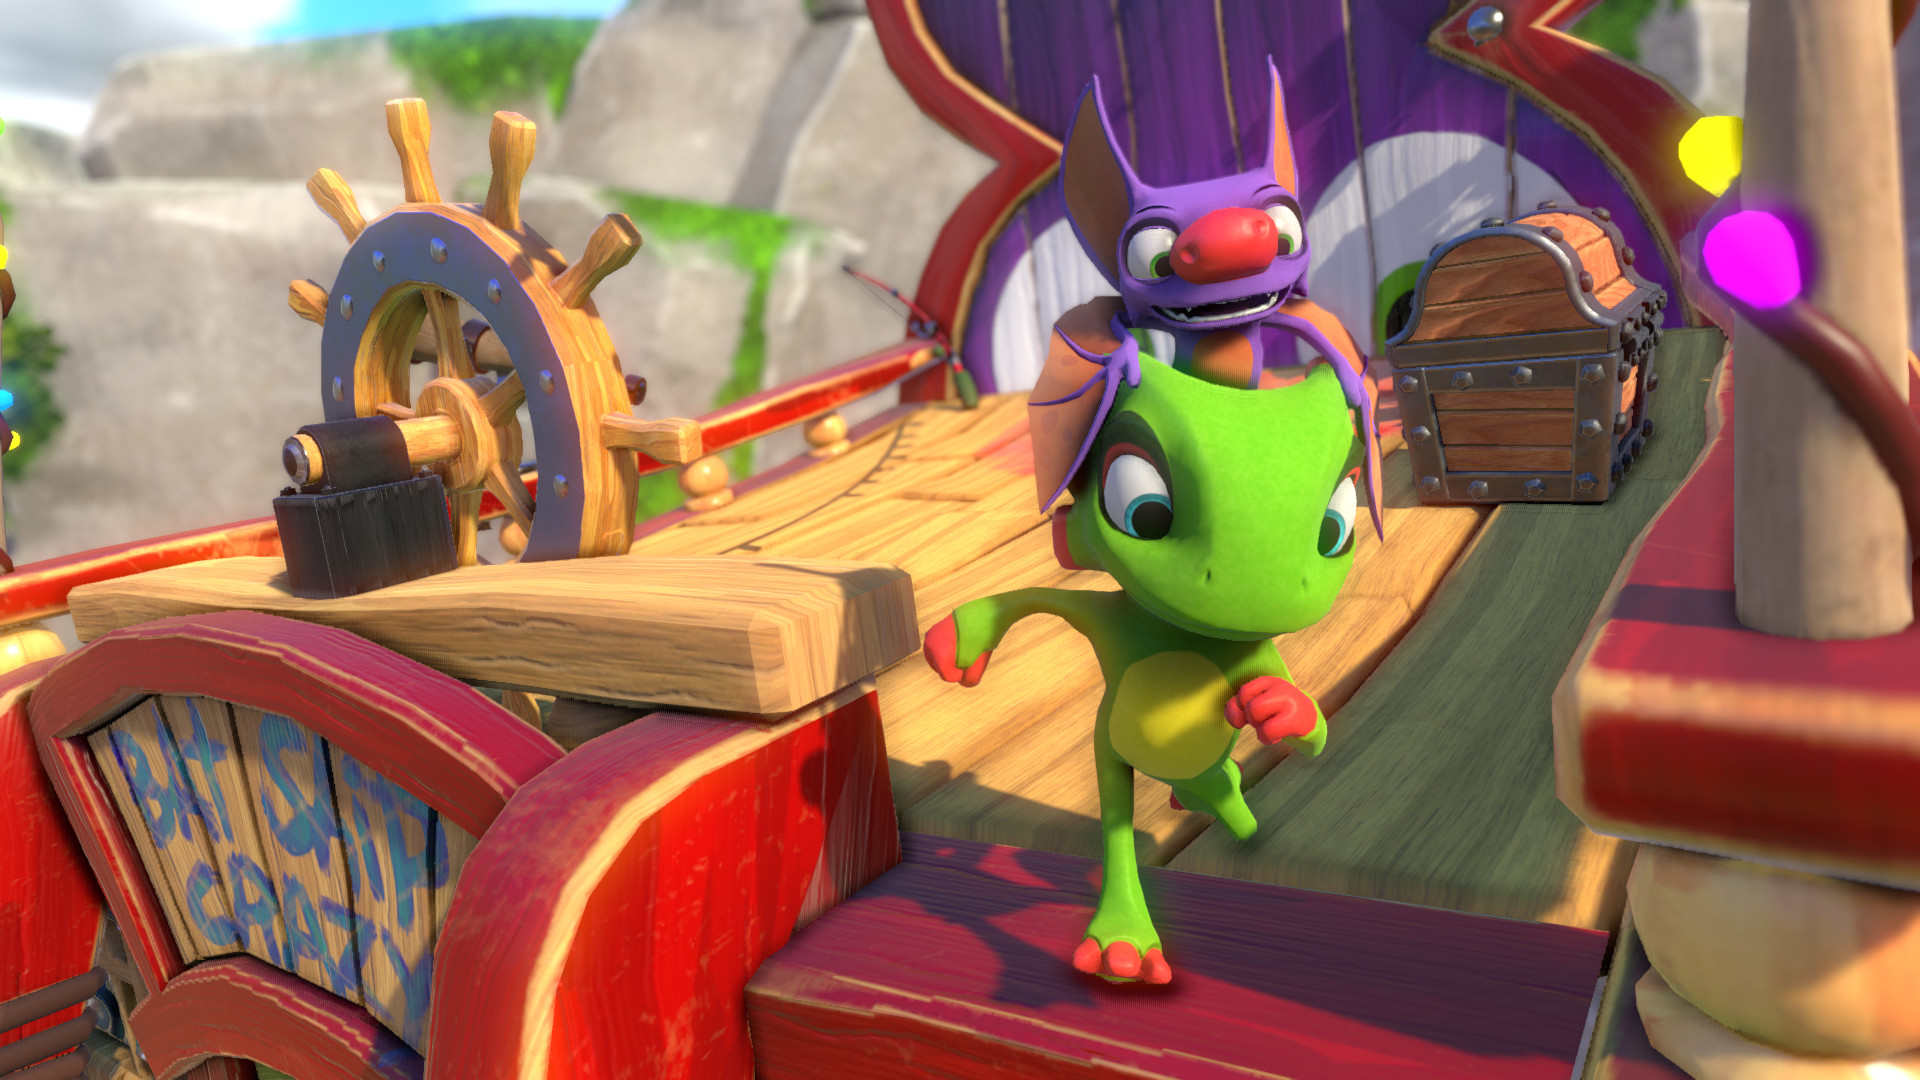 Playtonic Games Teases A New Game Announcement